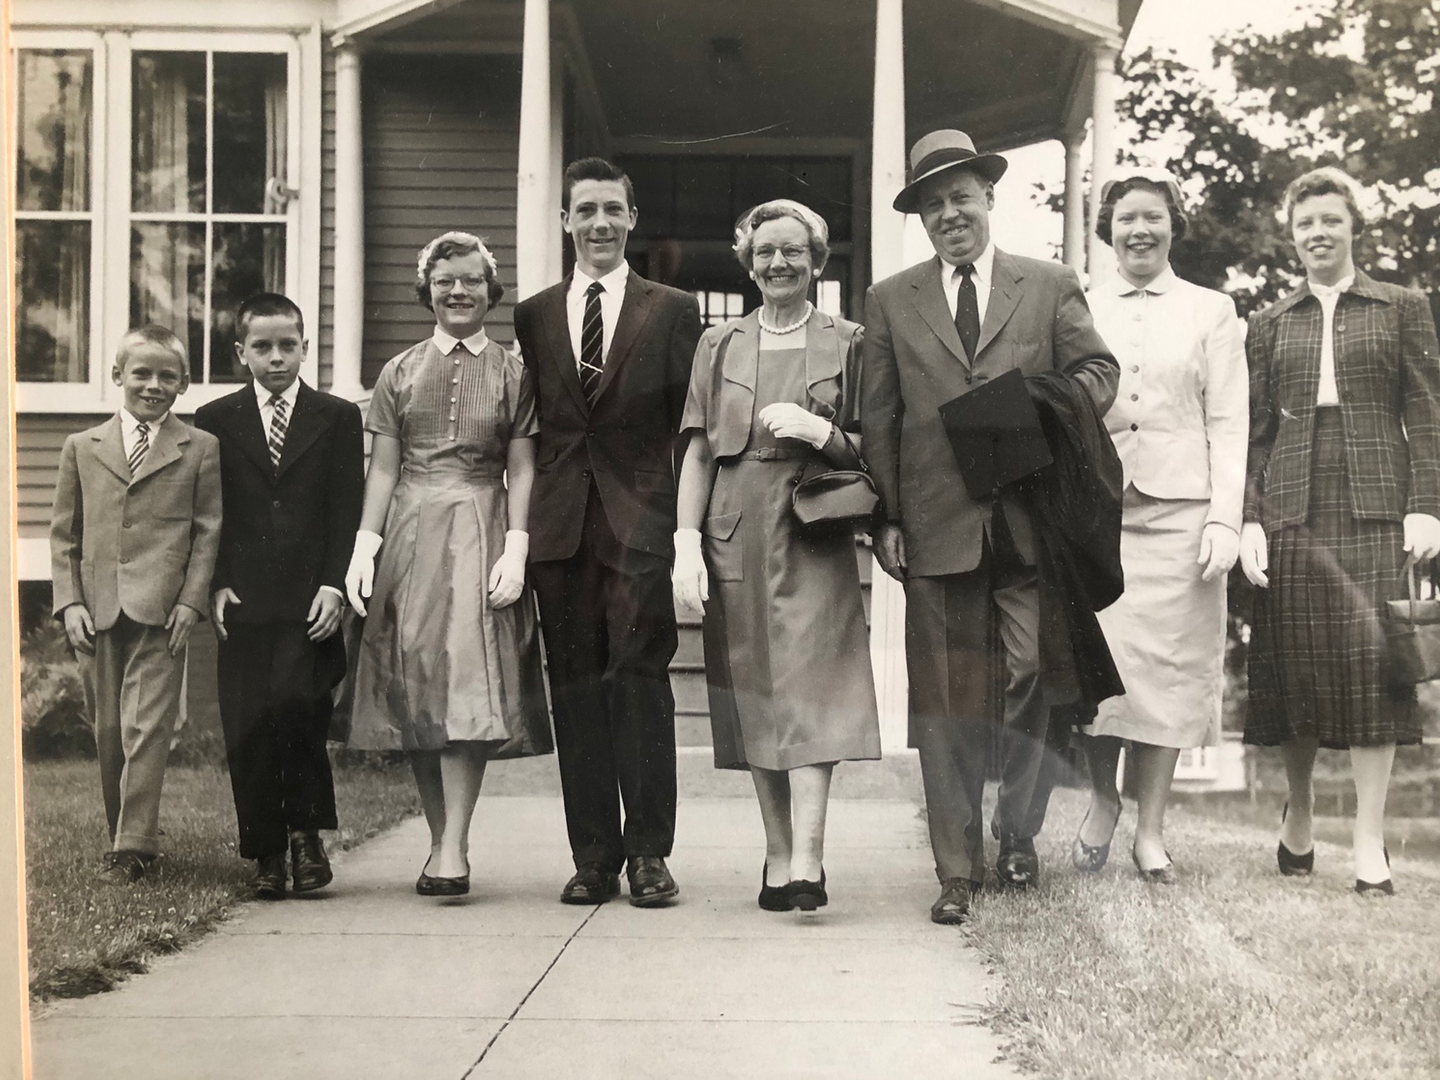 John A. Murphy (second from the left) with his immediate family